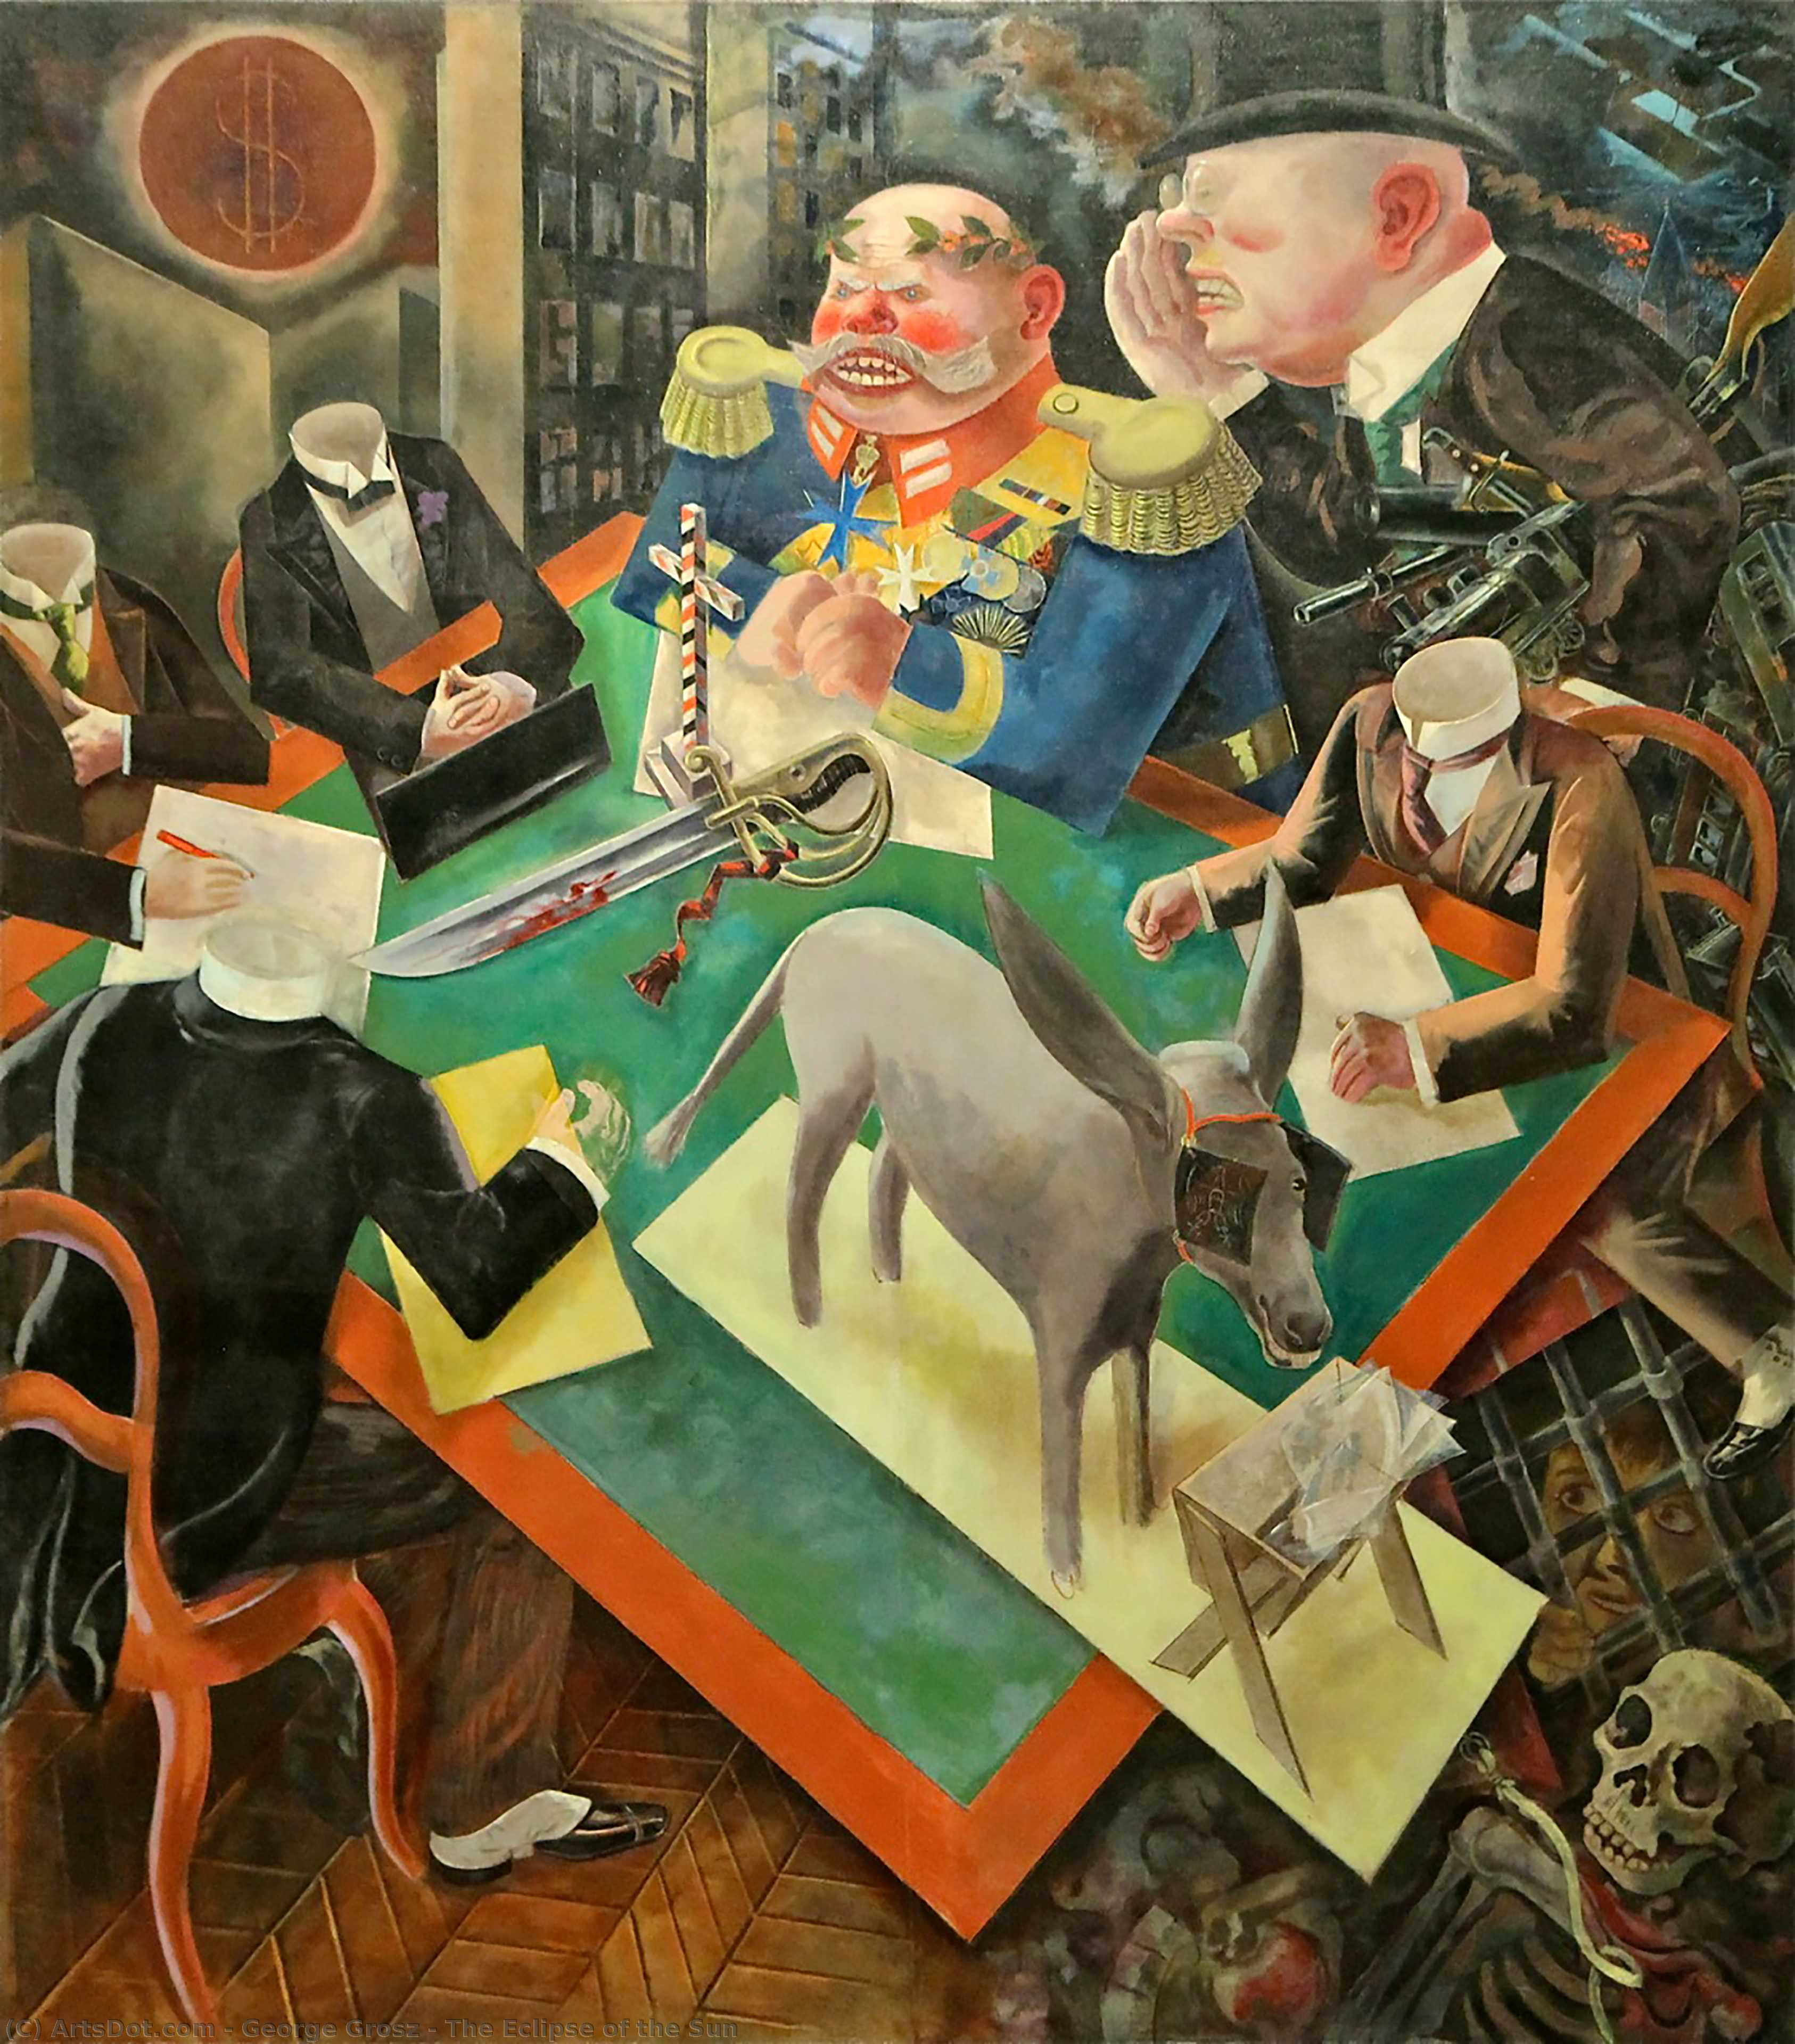 The Eclipse of the Sun - George Grosz